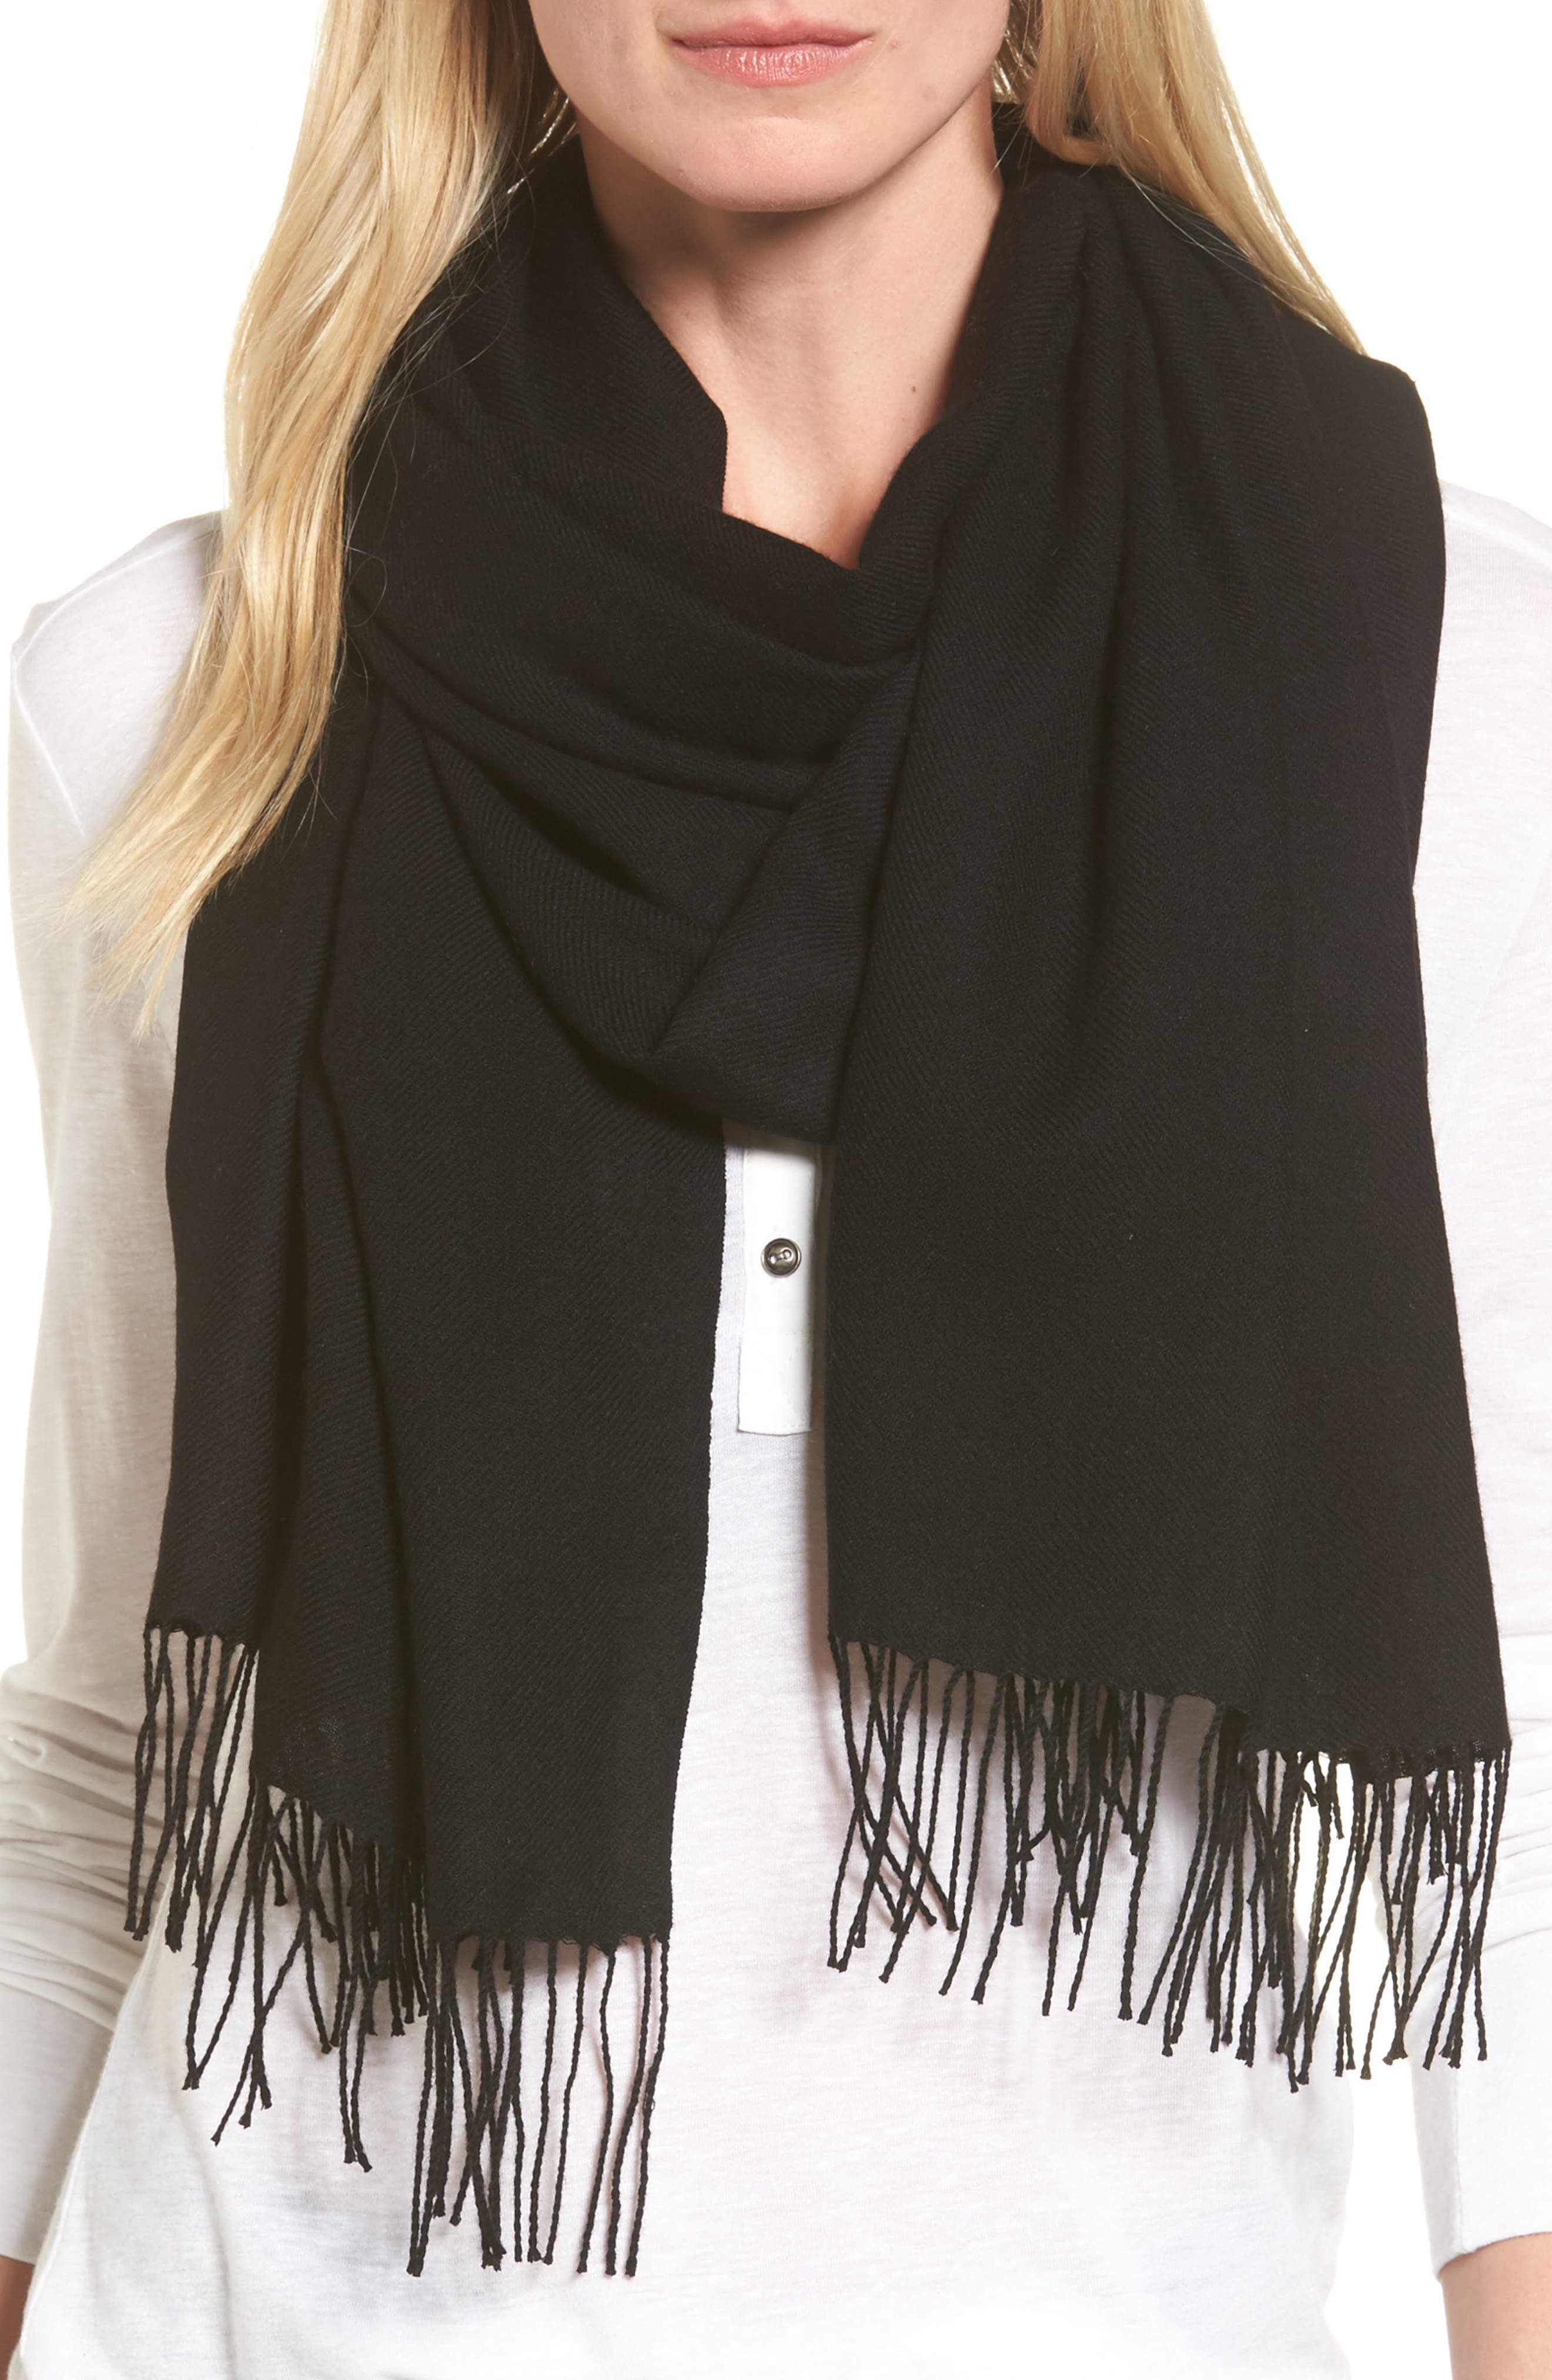 NORDSTROM, Tissue Weight Wool & Cashmere Scarf, Main thumbnail 1, color, BLACK